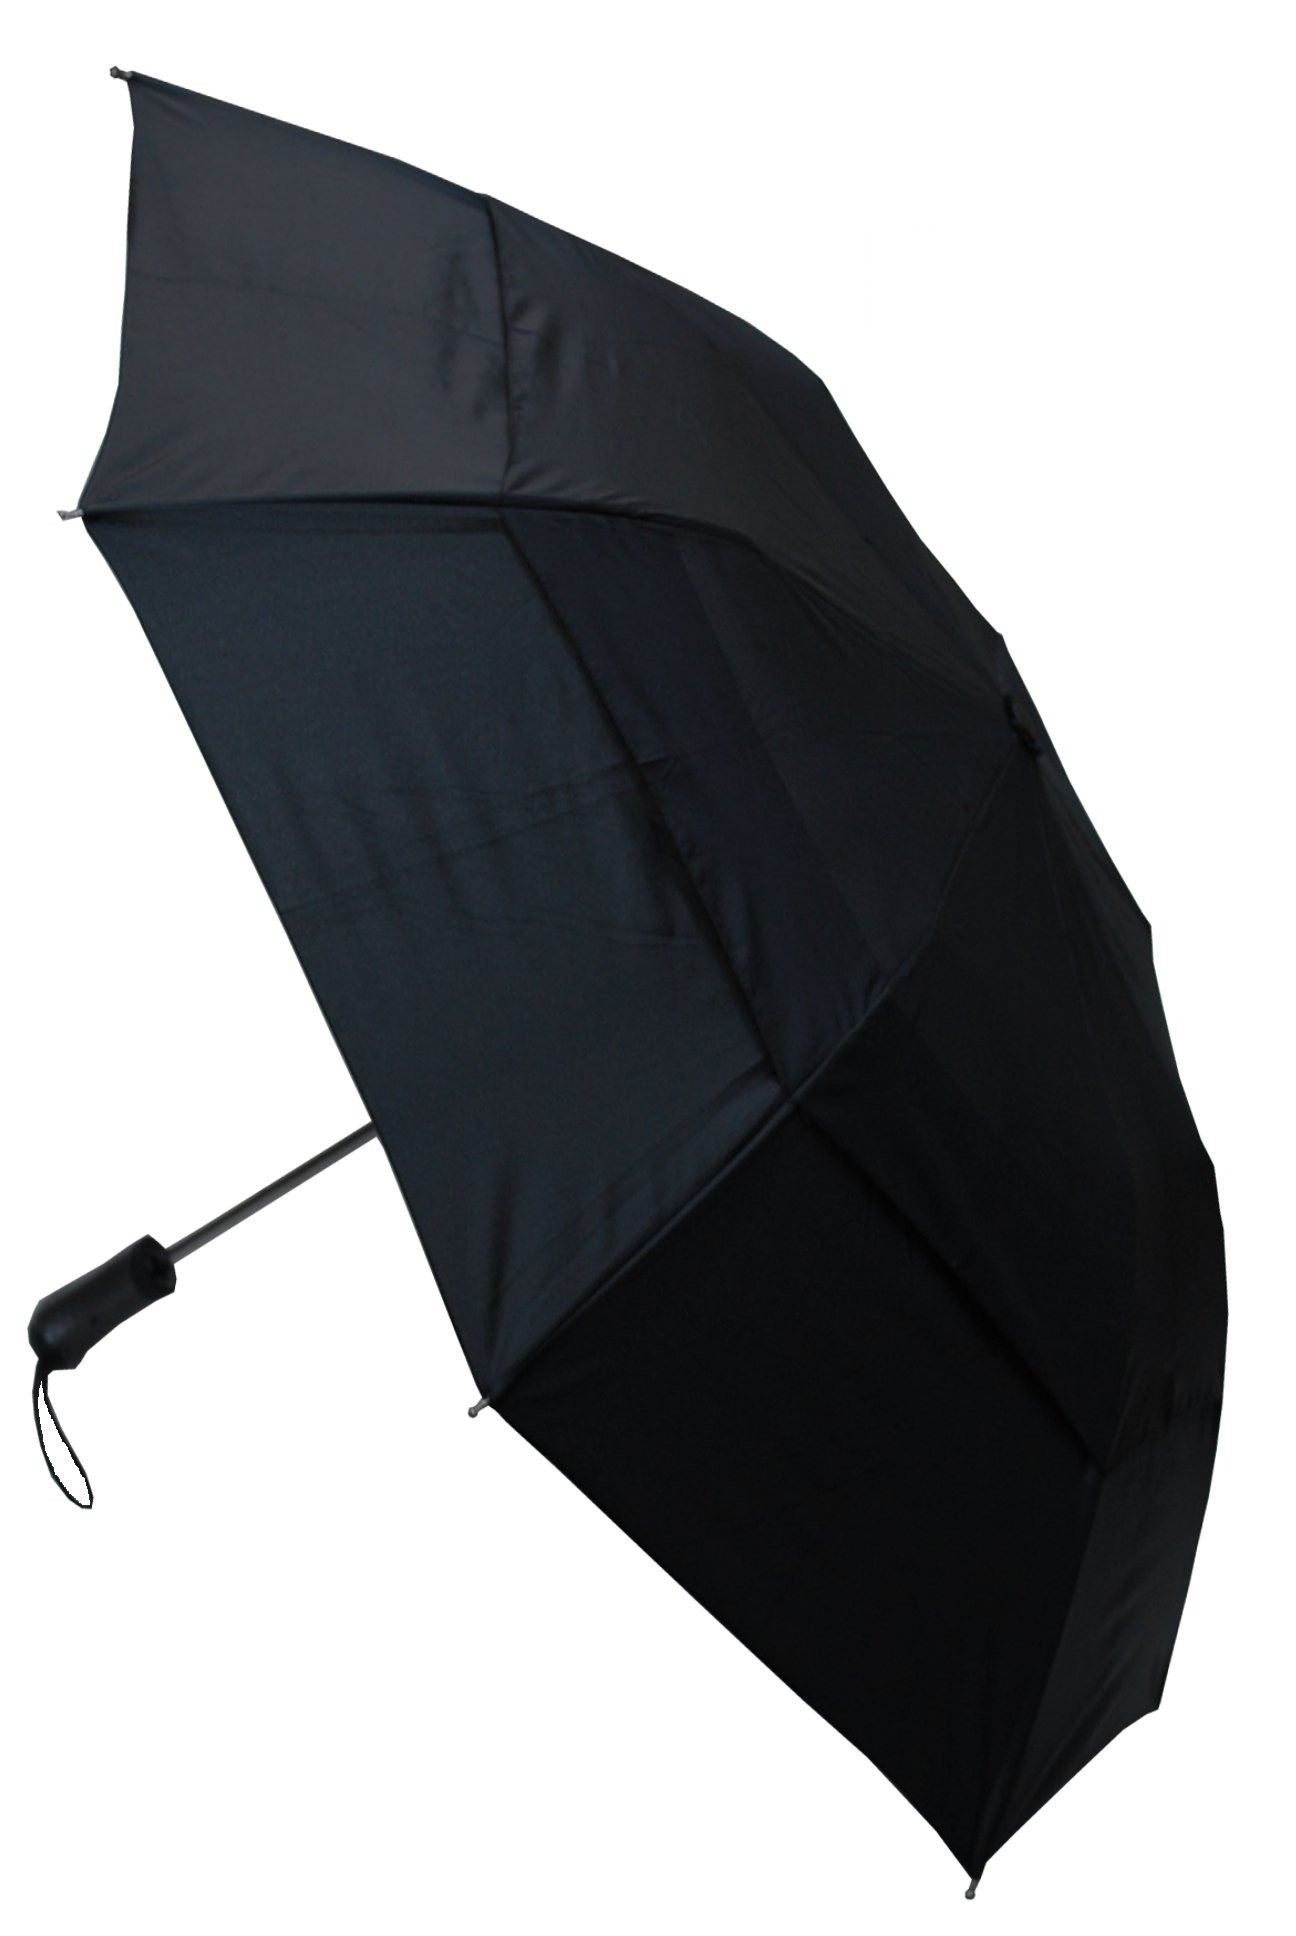 COLLAR AND CUFFS LONDON - RARE 2-Fold Windproof - 50 inch Arc - EXTRA STRONG Folding Umbrella - Vented Canopy - Auto Black